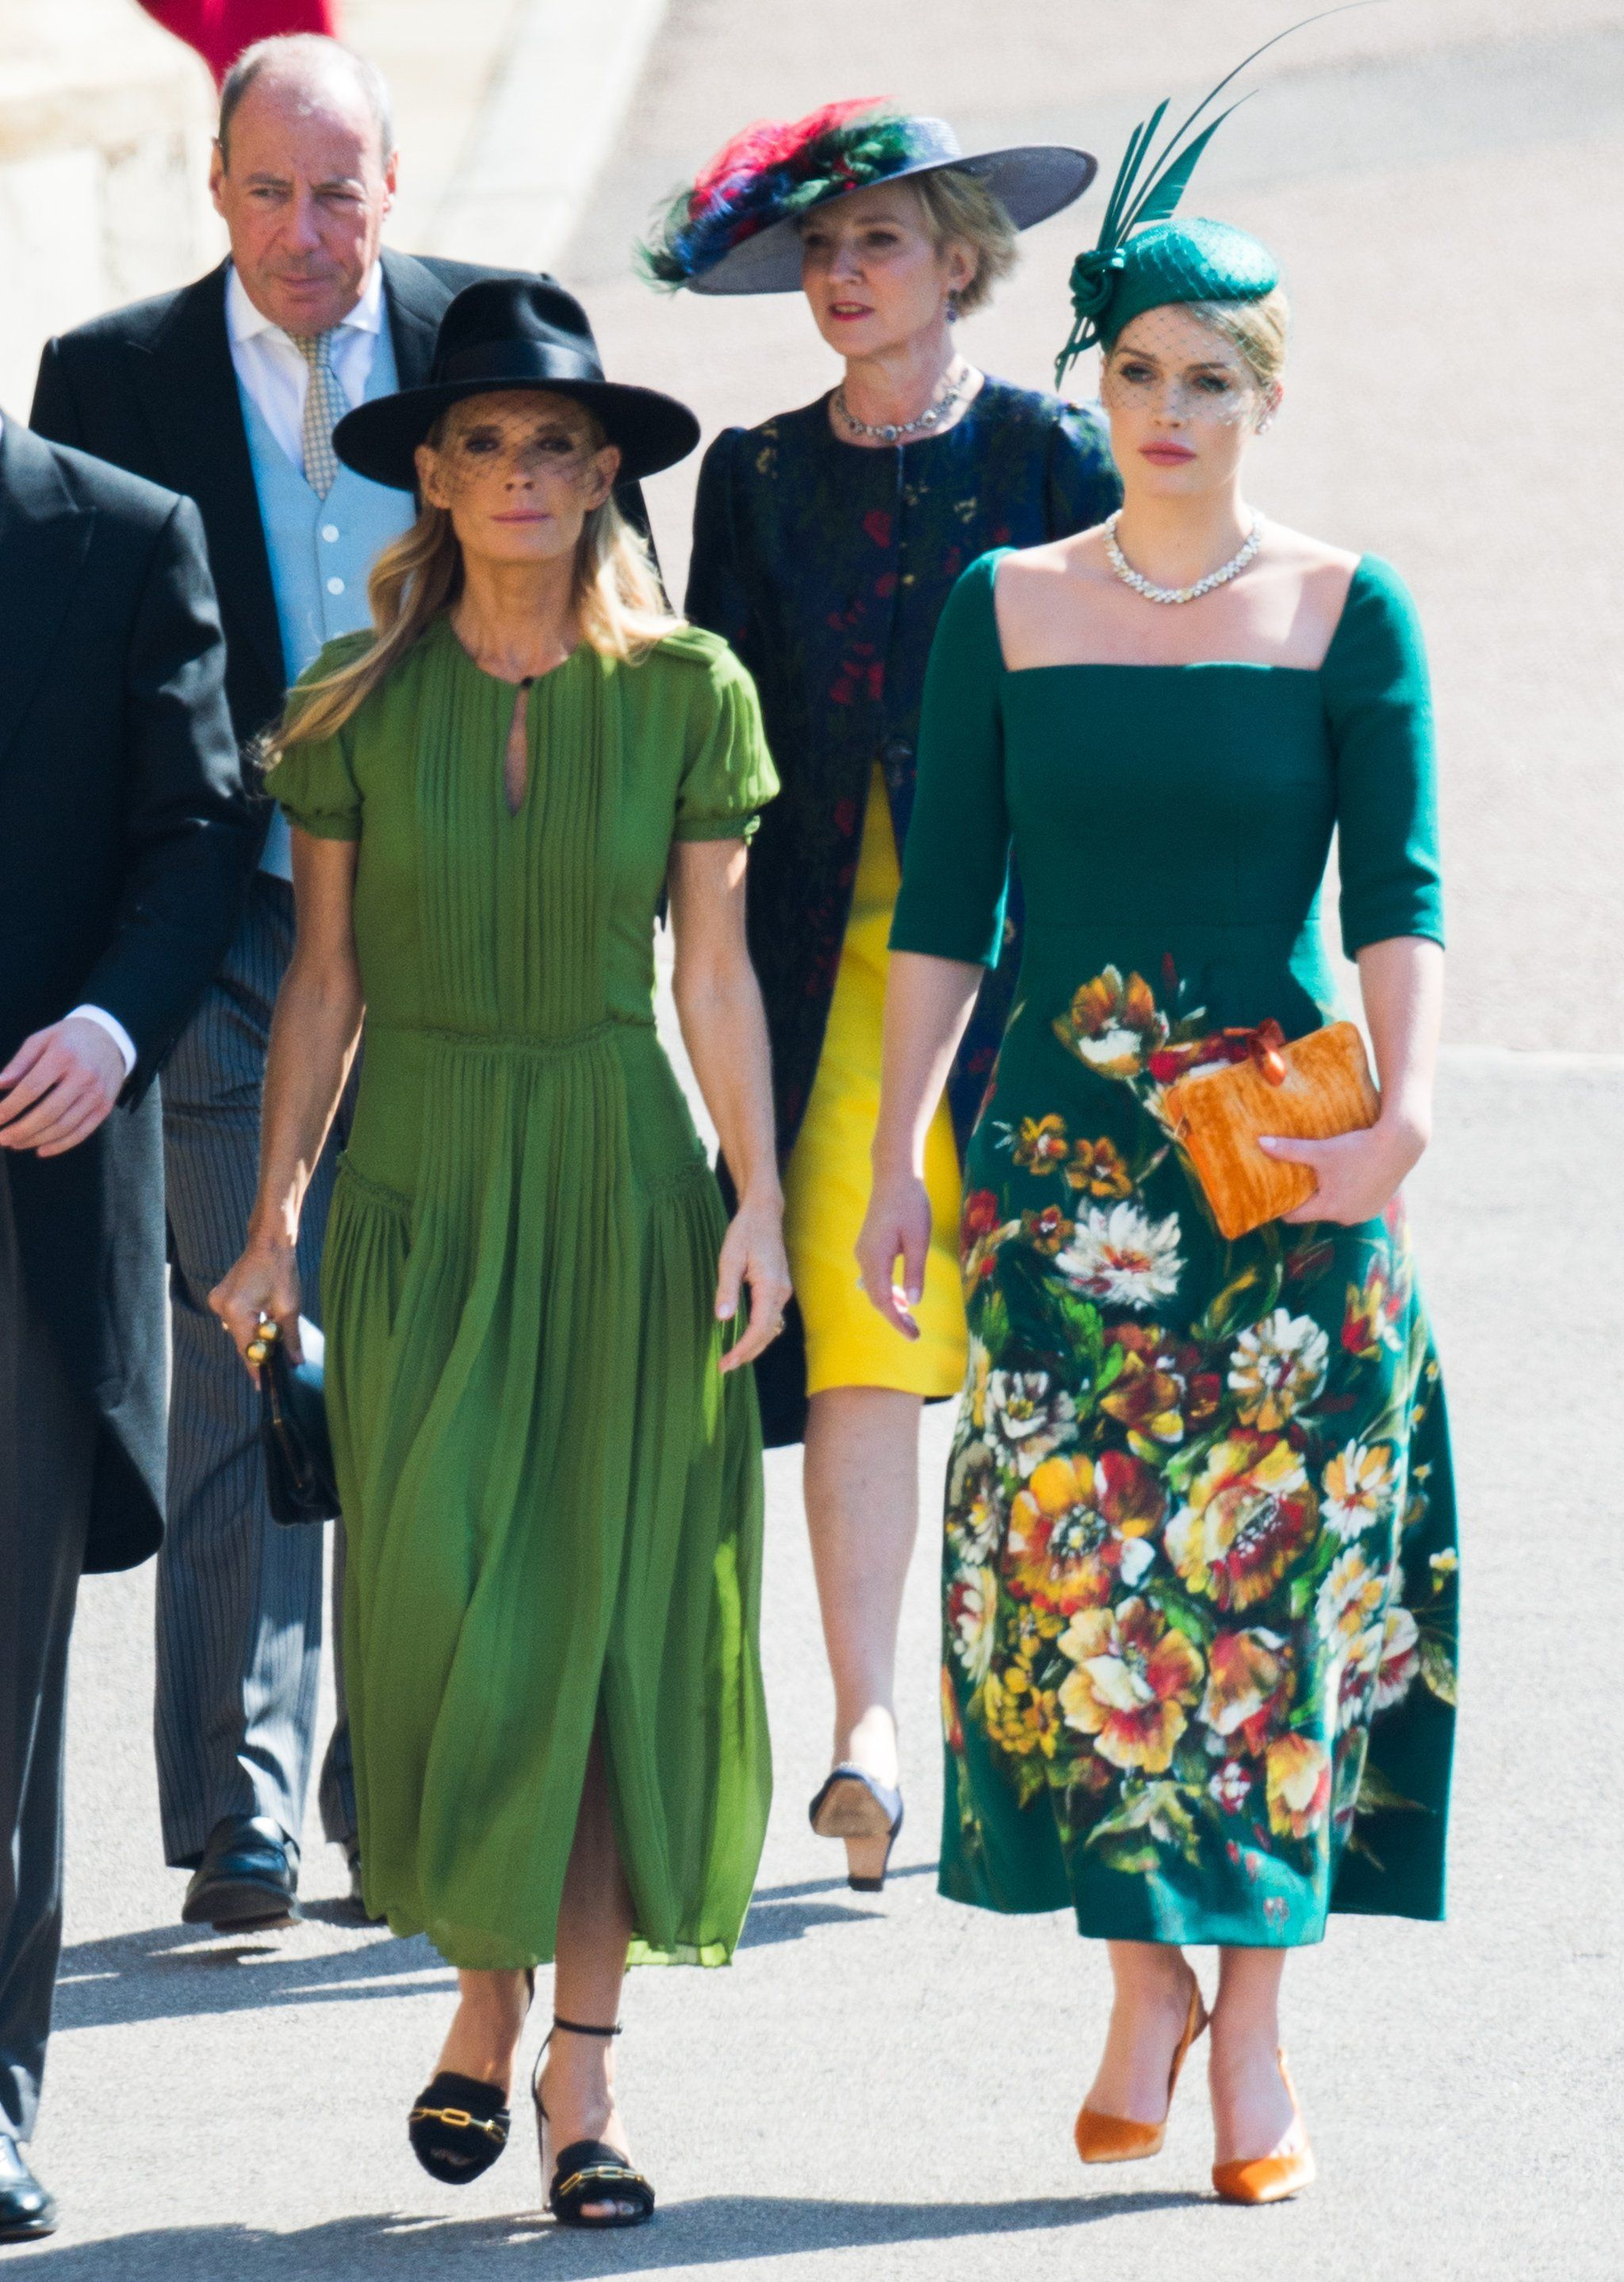 Royal Wedding of Prince Harry   Meghan Markle ❤ Lady Kitty Spencer walking  beside her mother Victoria Aitken to attend the wedding of her first cousin  ... 18a3ab27774f